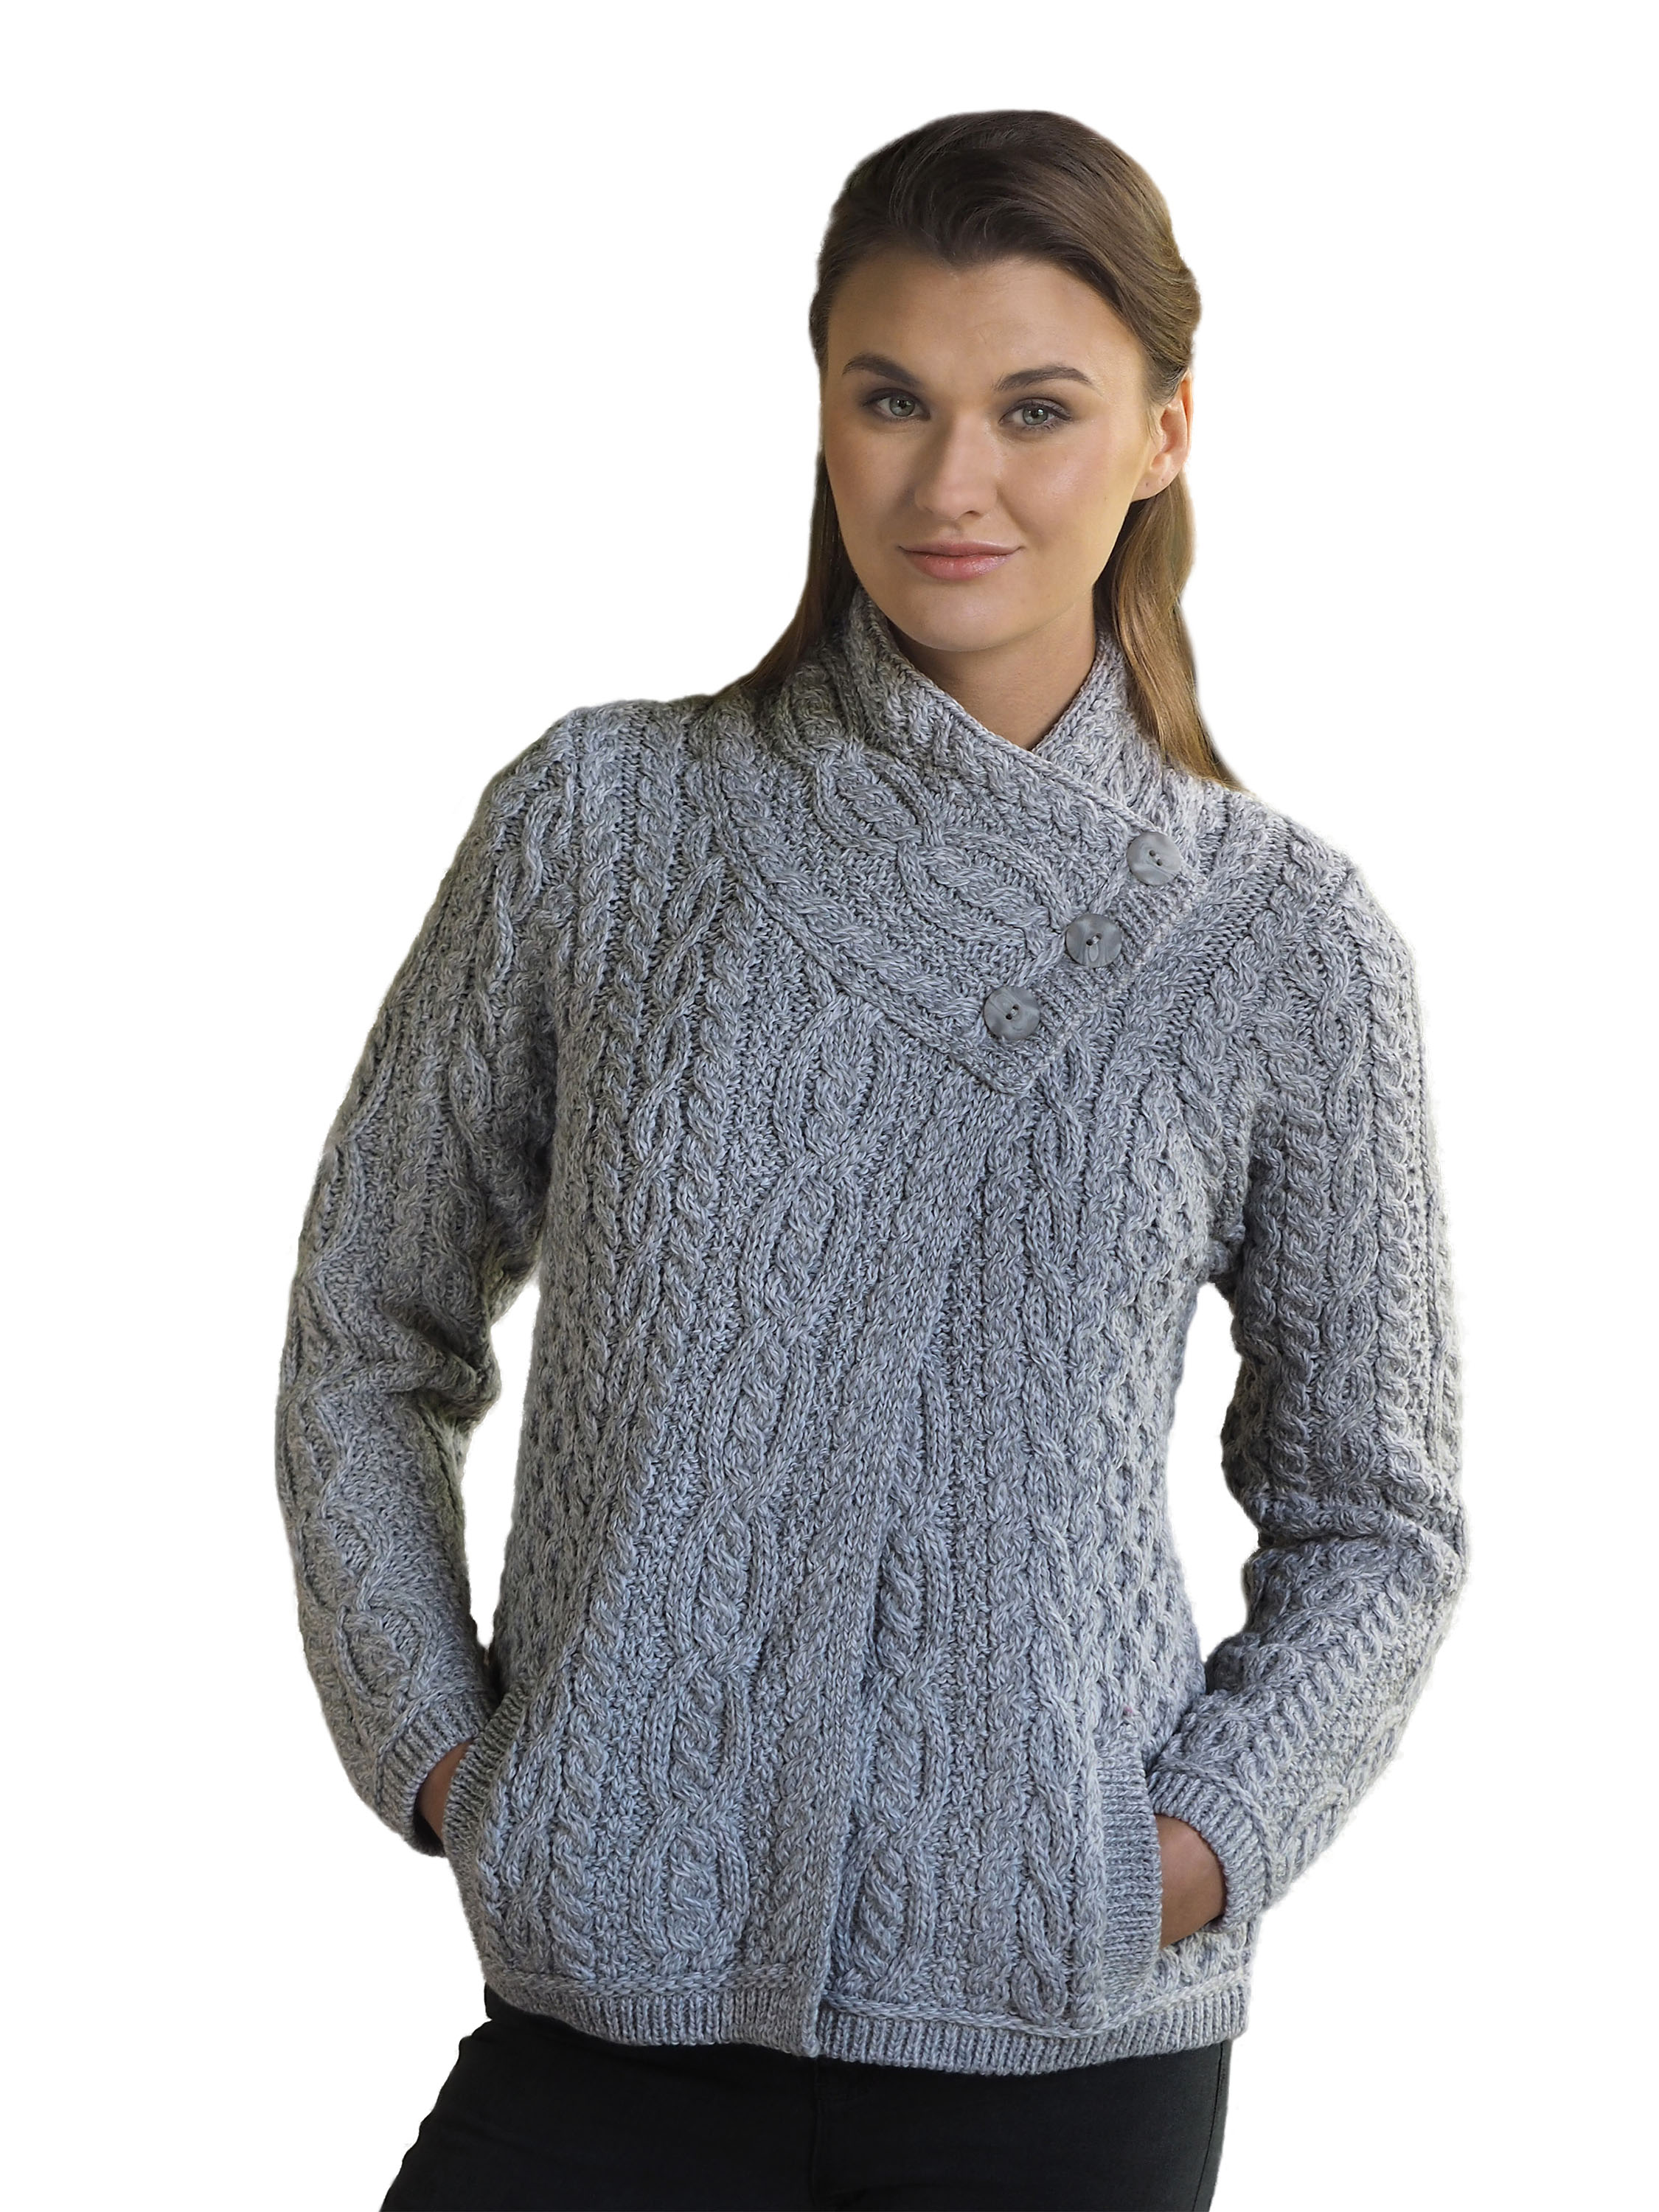 a Giacca Cable tre Knit lana irlandese bottoni in 8gSgxEqwf